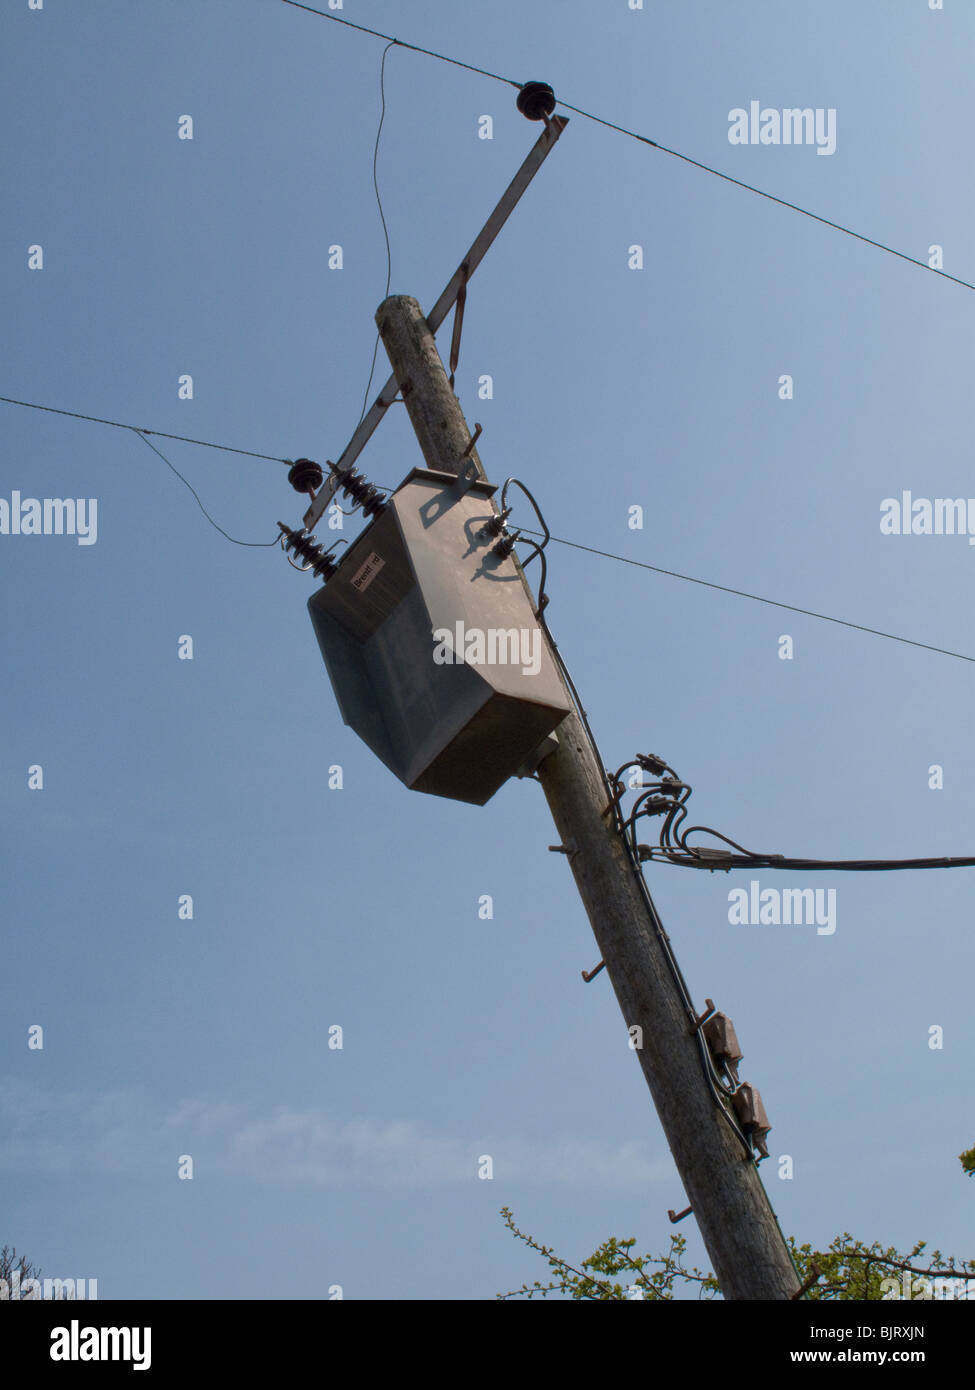 WOODEN POWER CABLE POLE AND TRANSFORMER. - Stock Image